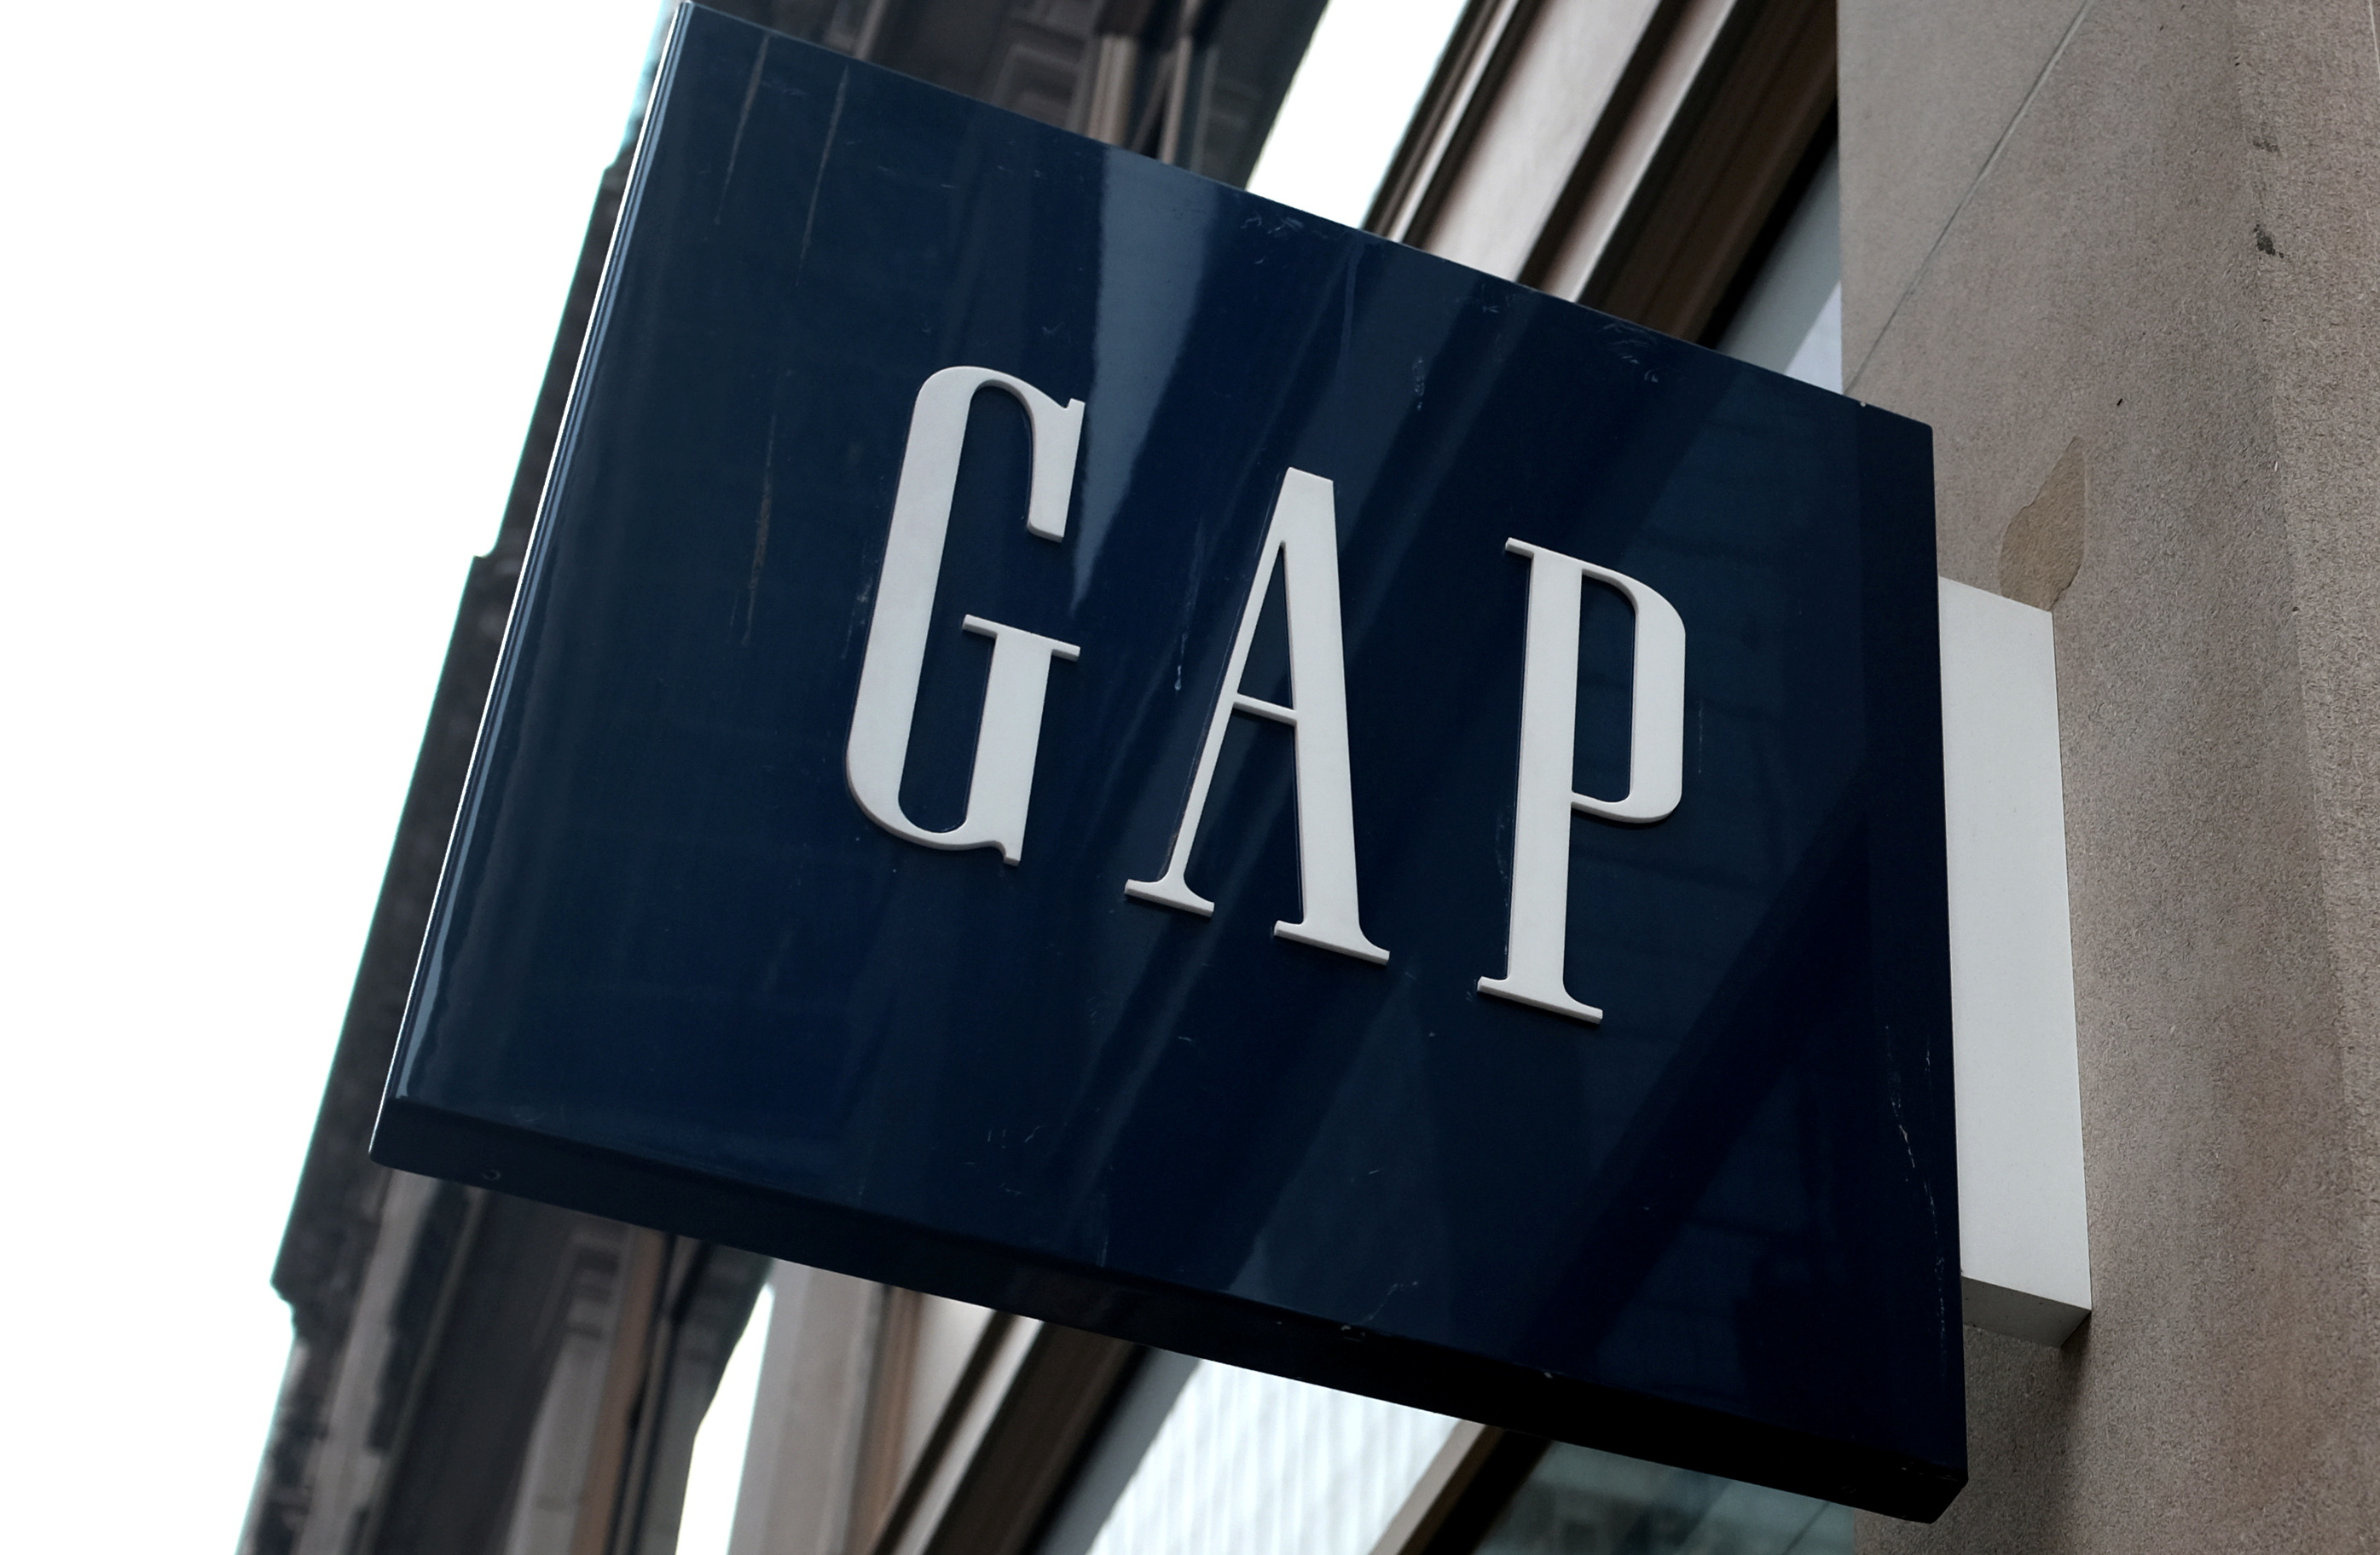 A sign hangs outside a GAP clothing retail store in Manhattan, New York, U.S., May 13, 2016. REUTERS/Mike Segar